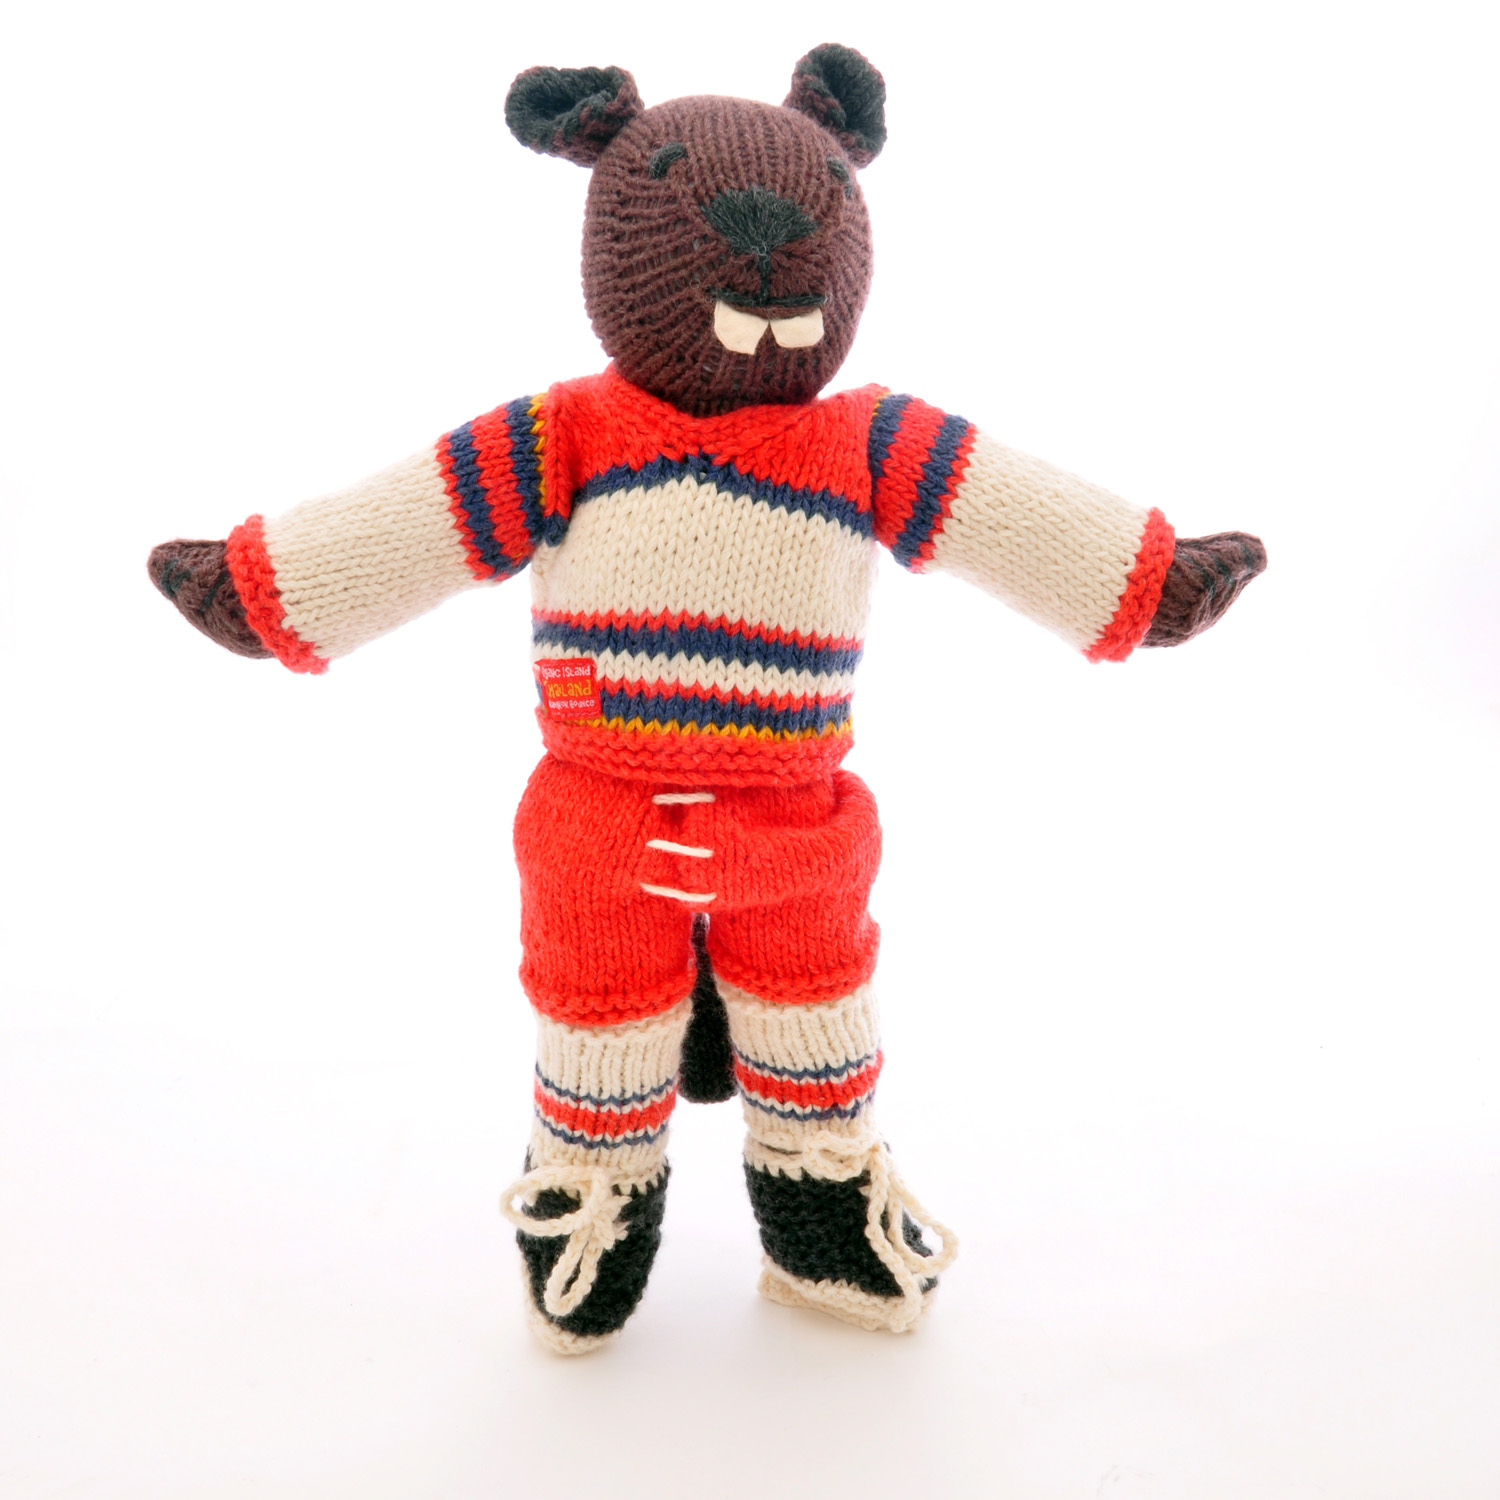 Beaver Soft Toy in Ice Hockey Outfit